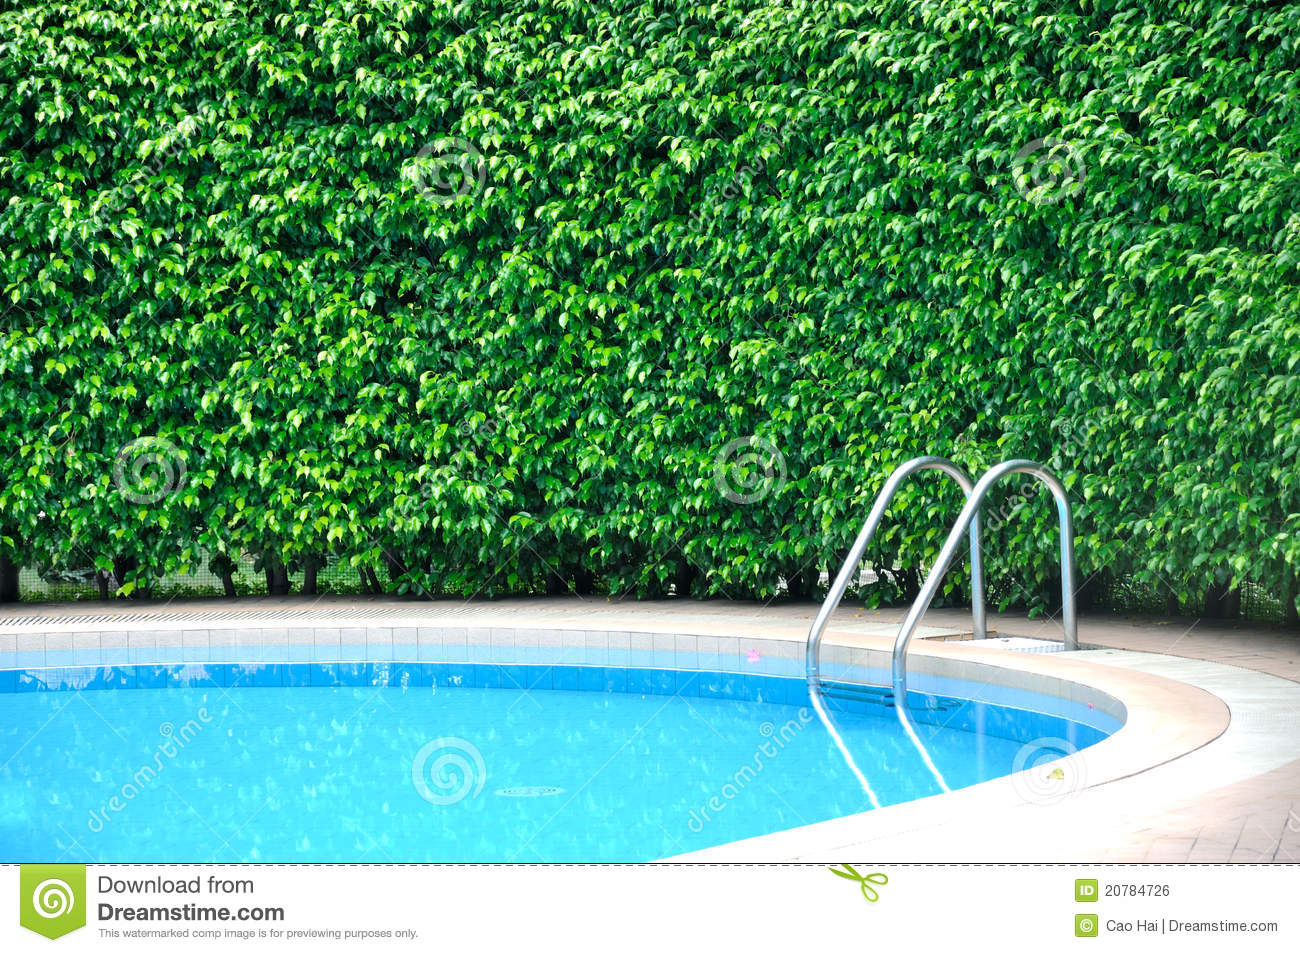 Fence by the pool with trees in garden backdrop